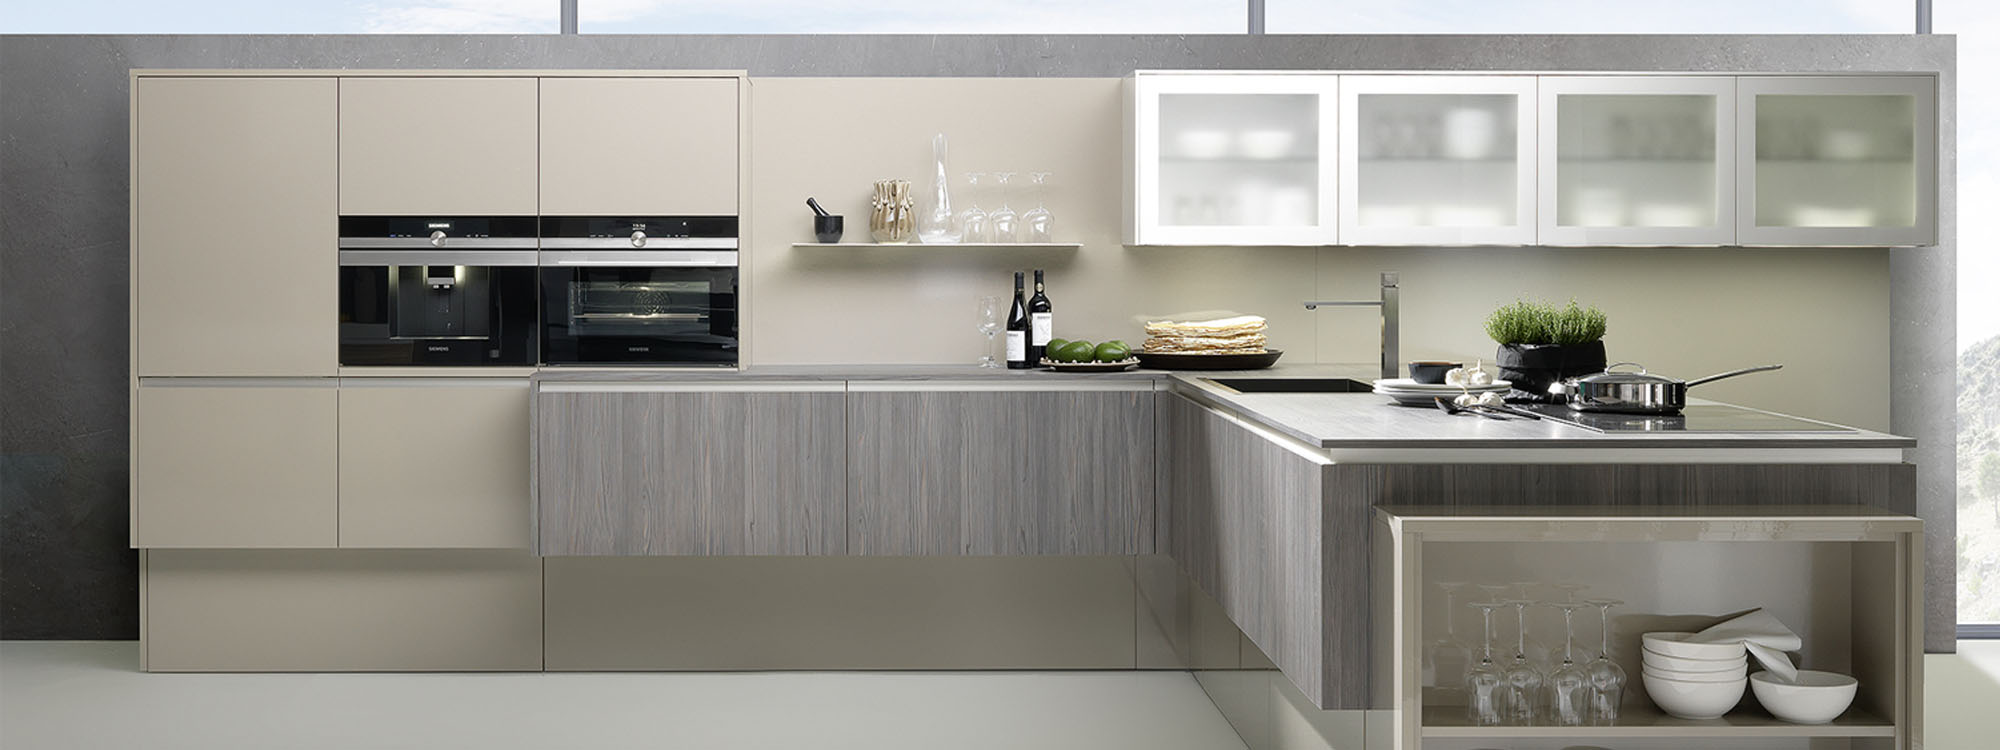 Rational Kitchens Prices